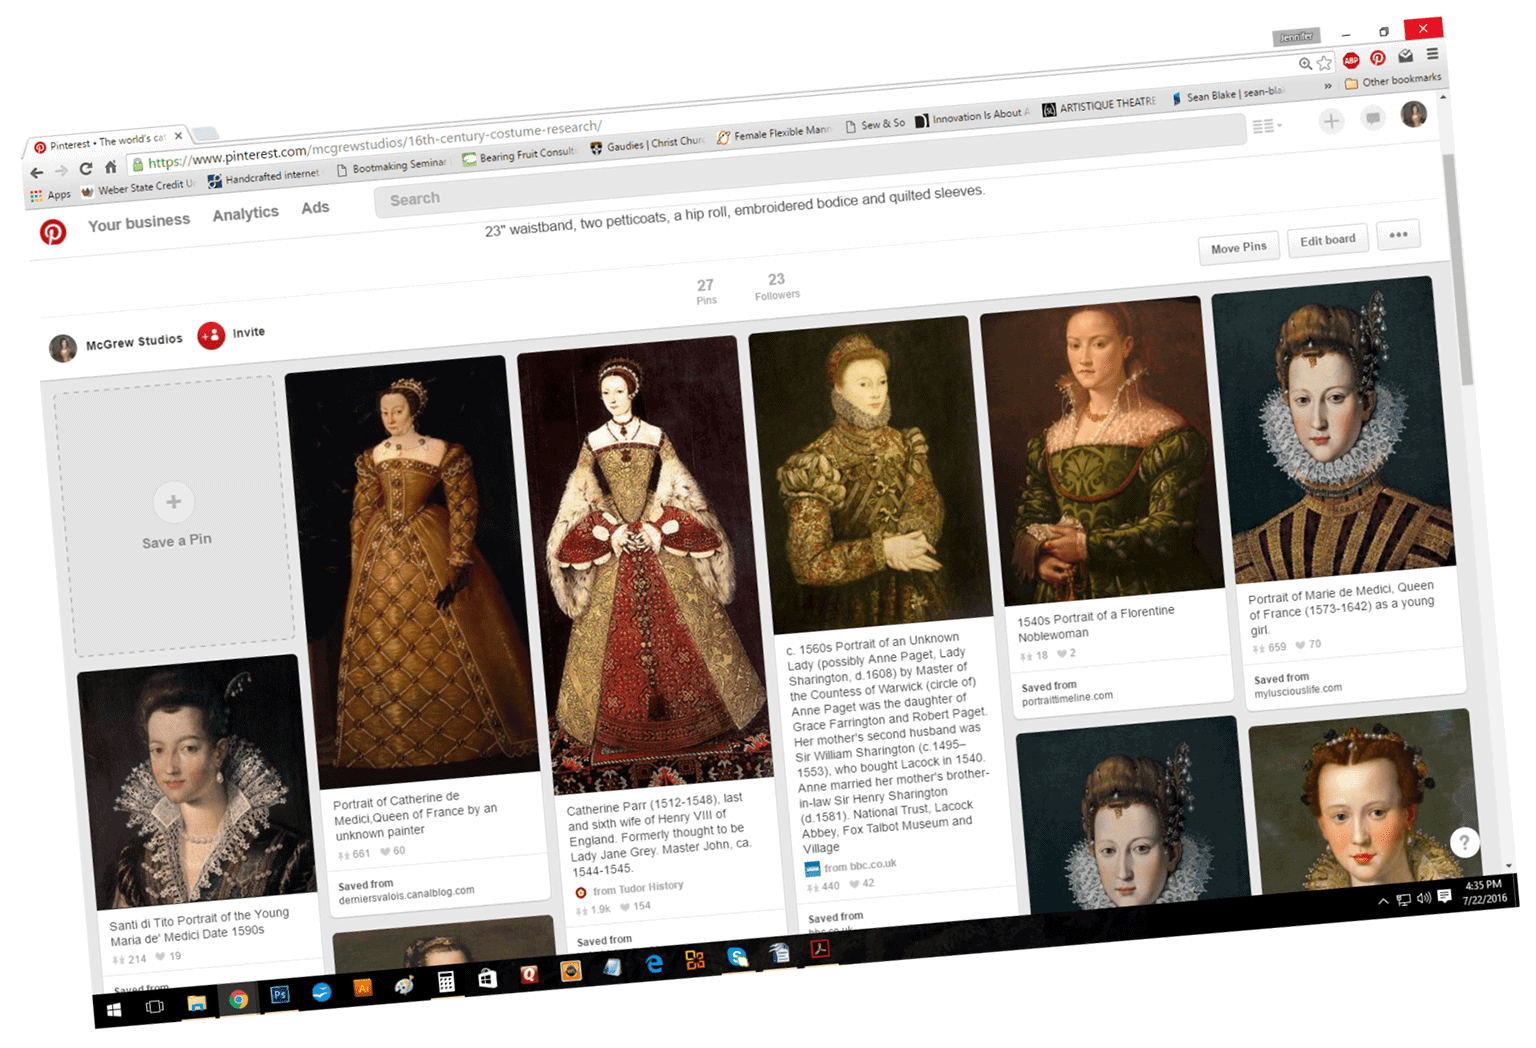 16th_century_costume_references_miss_italy_multiverse